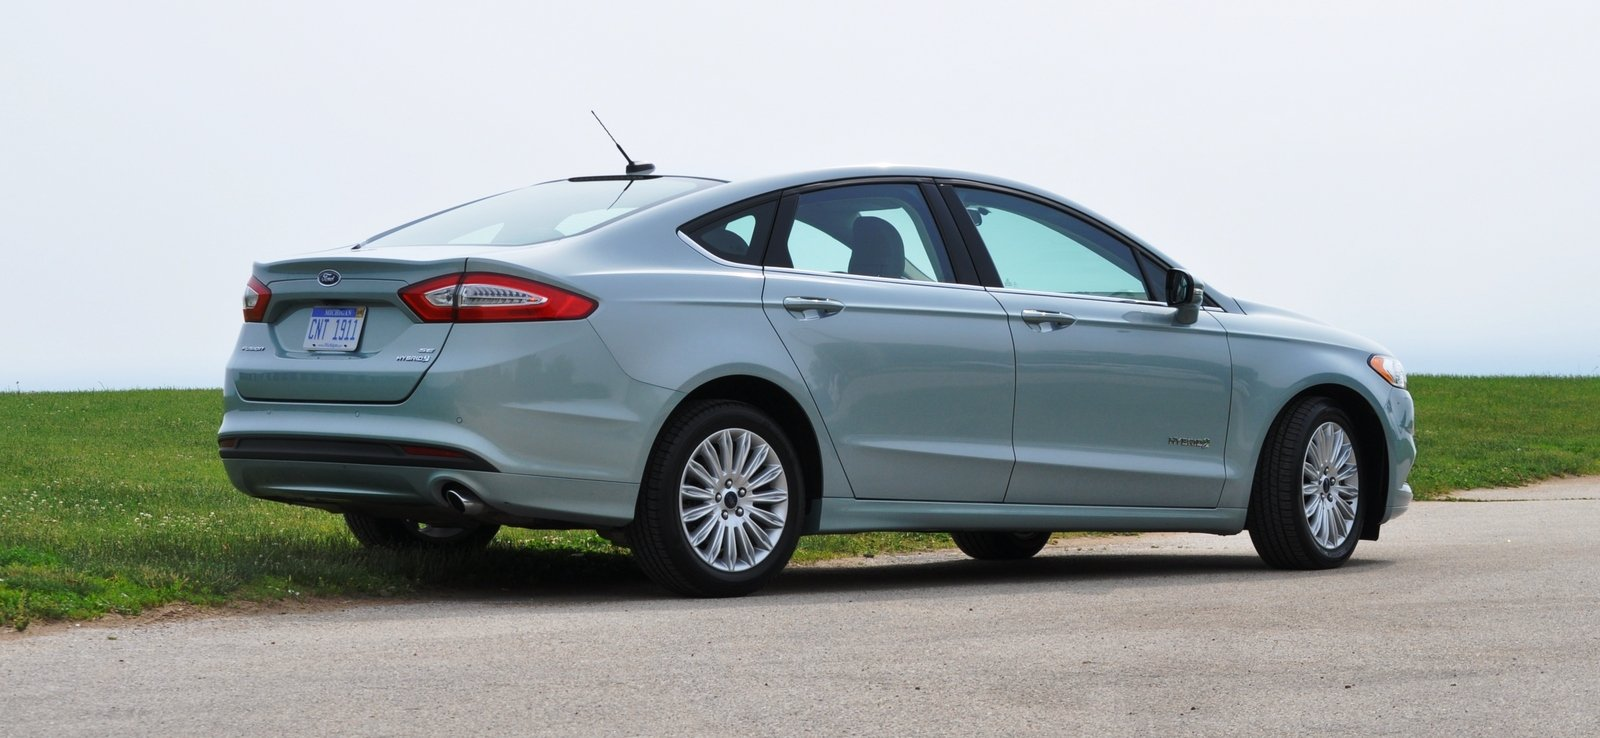 2014 ford fusion hybrid picture 512554 car review. Black Bedroom Furniture Sets. Home Design Ideas